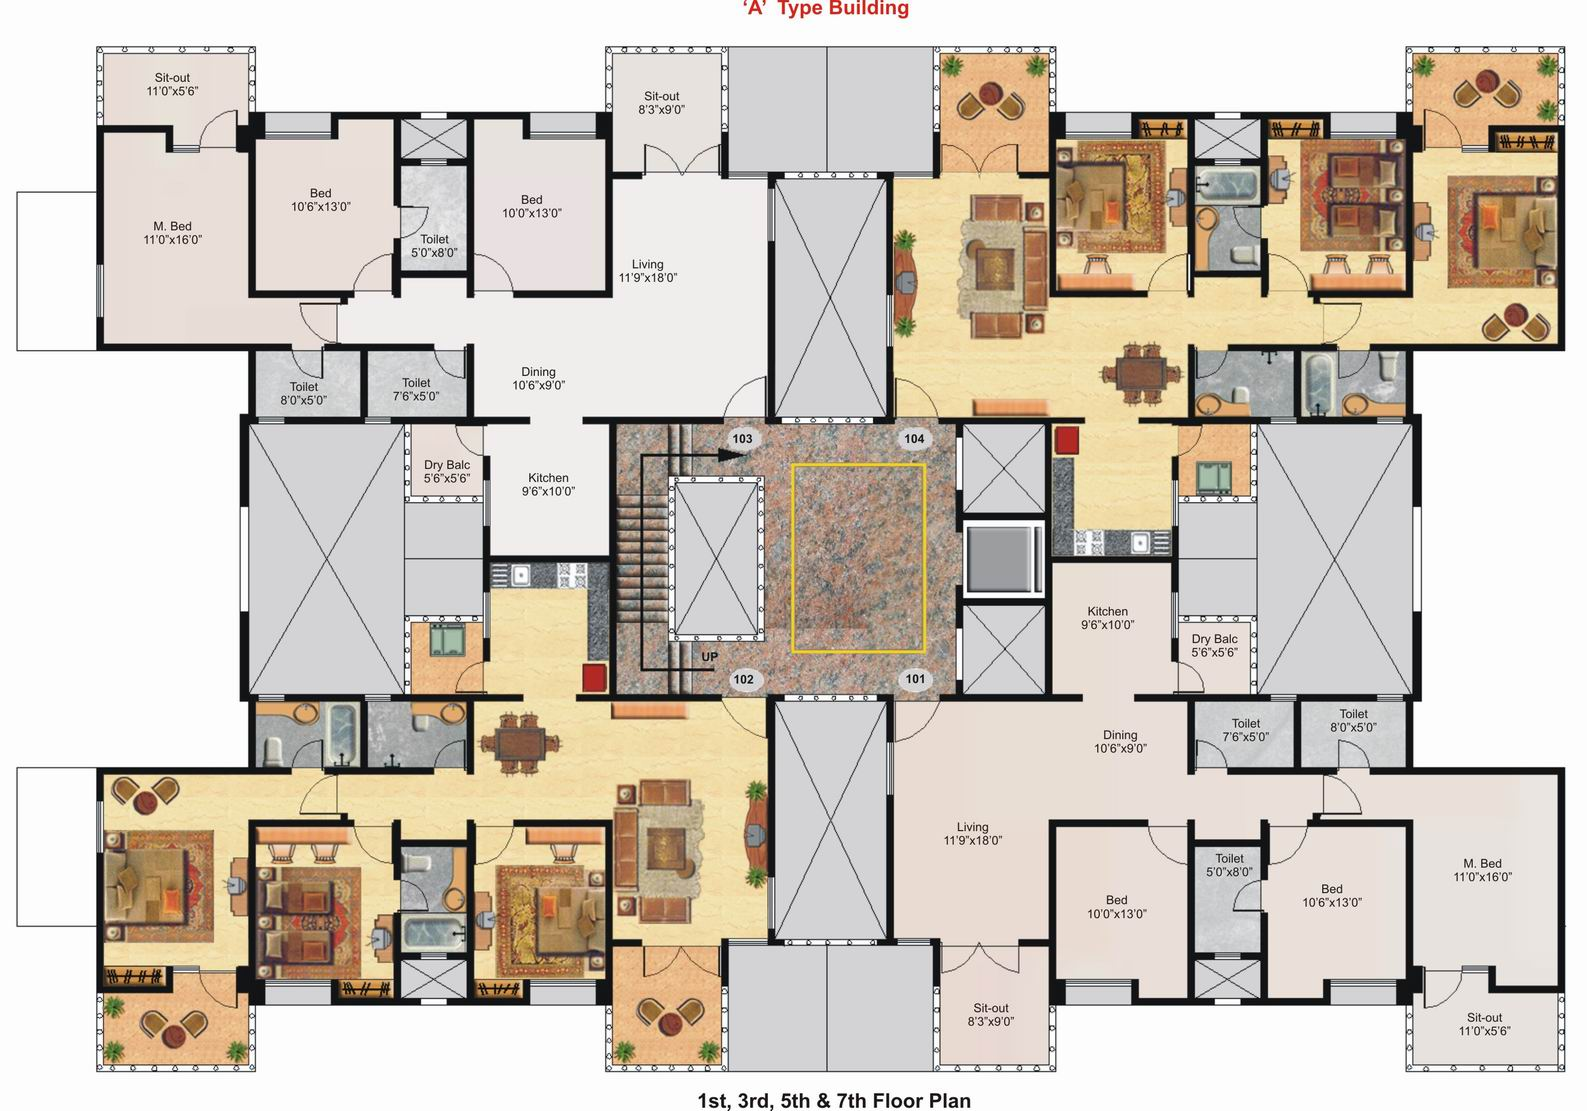 3d floor plan of a celeb mansion modern house Large house floor plans